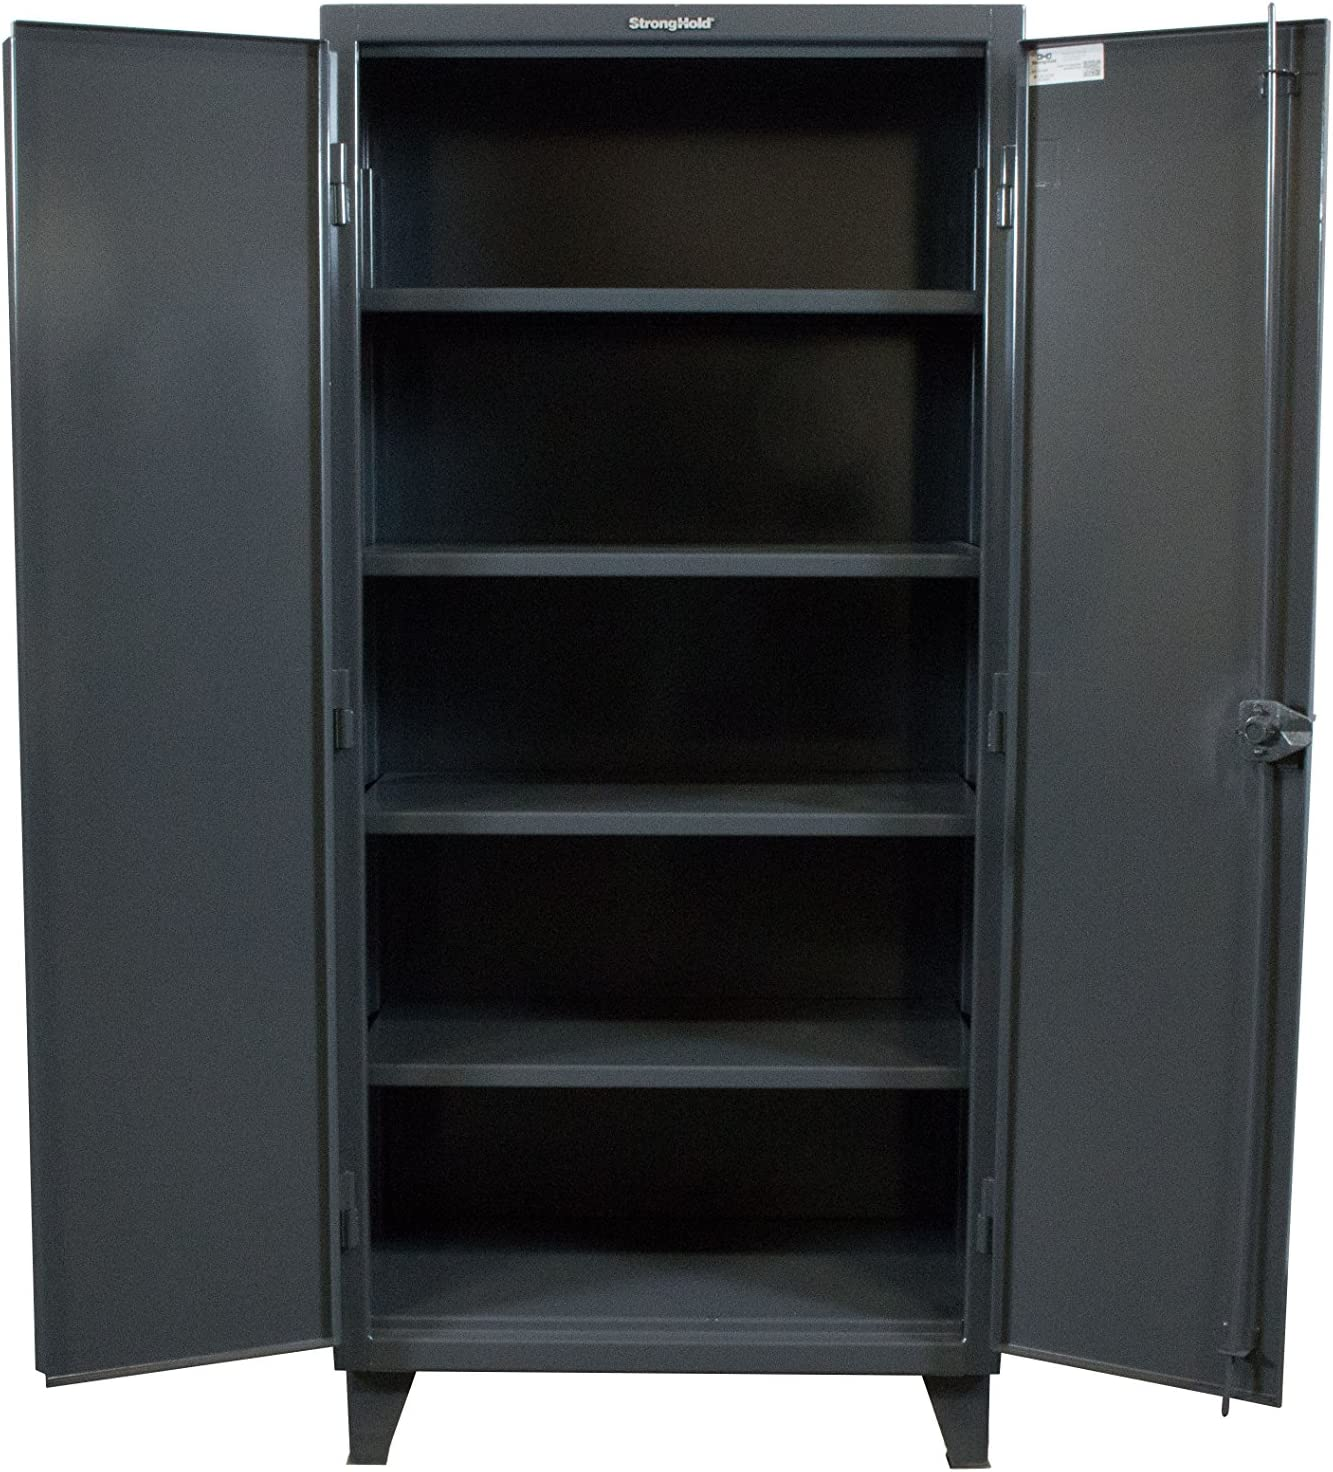 Strong Hold 60 W X 24 D X 78 H Industrial Cabinet Heavy Duty Welded And Assembled 12 Gauge Steel Dark Gray 4 Adjustable Shelves With 1 650 Lbs Capacity Each Usa 56 244